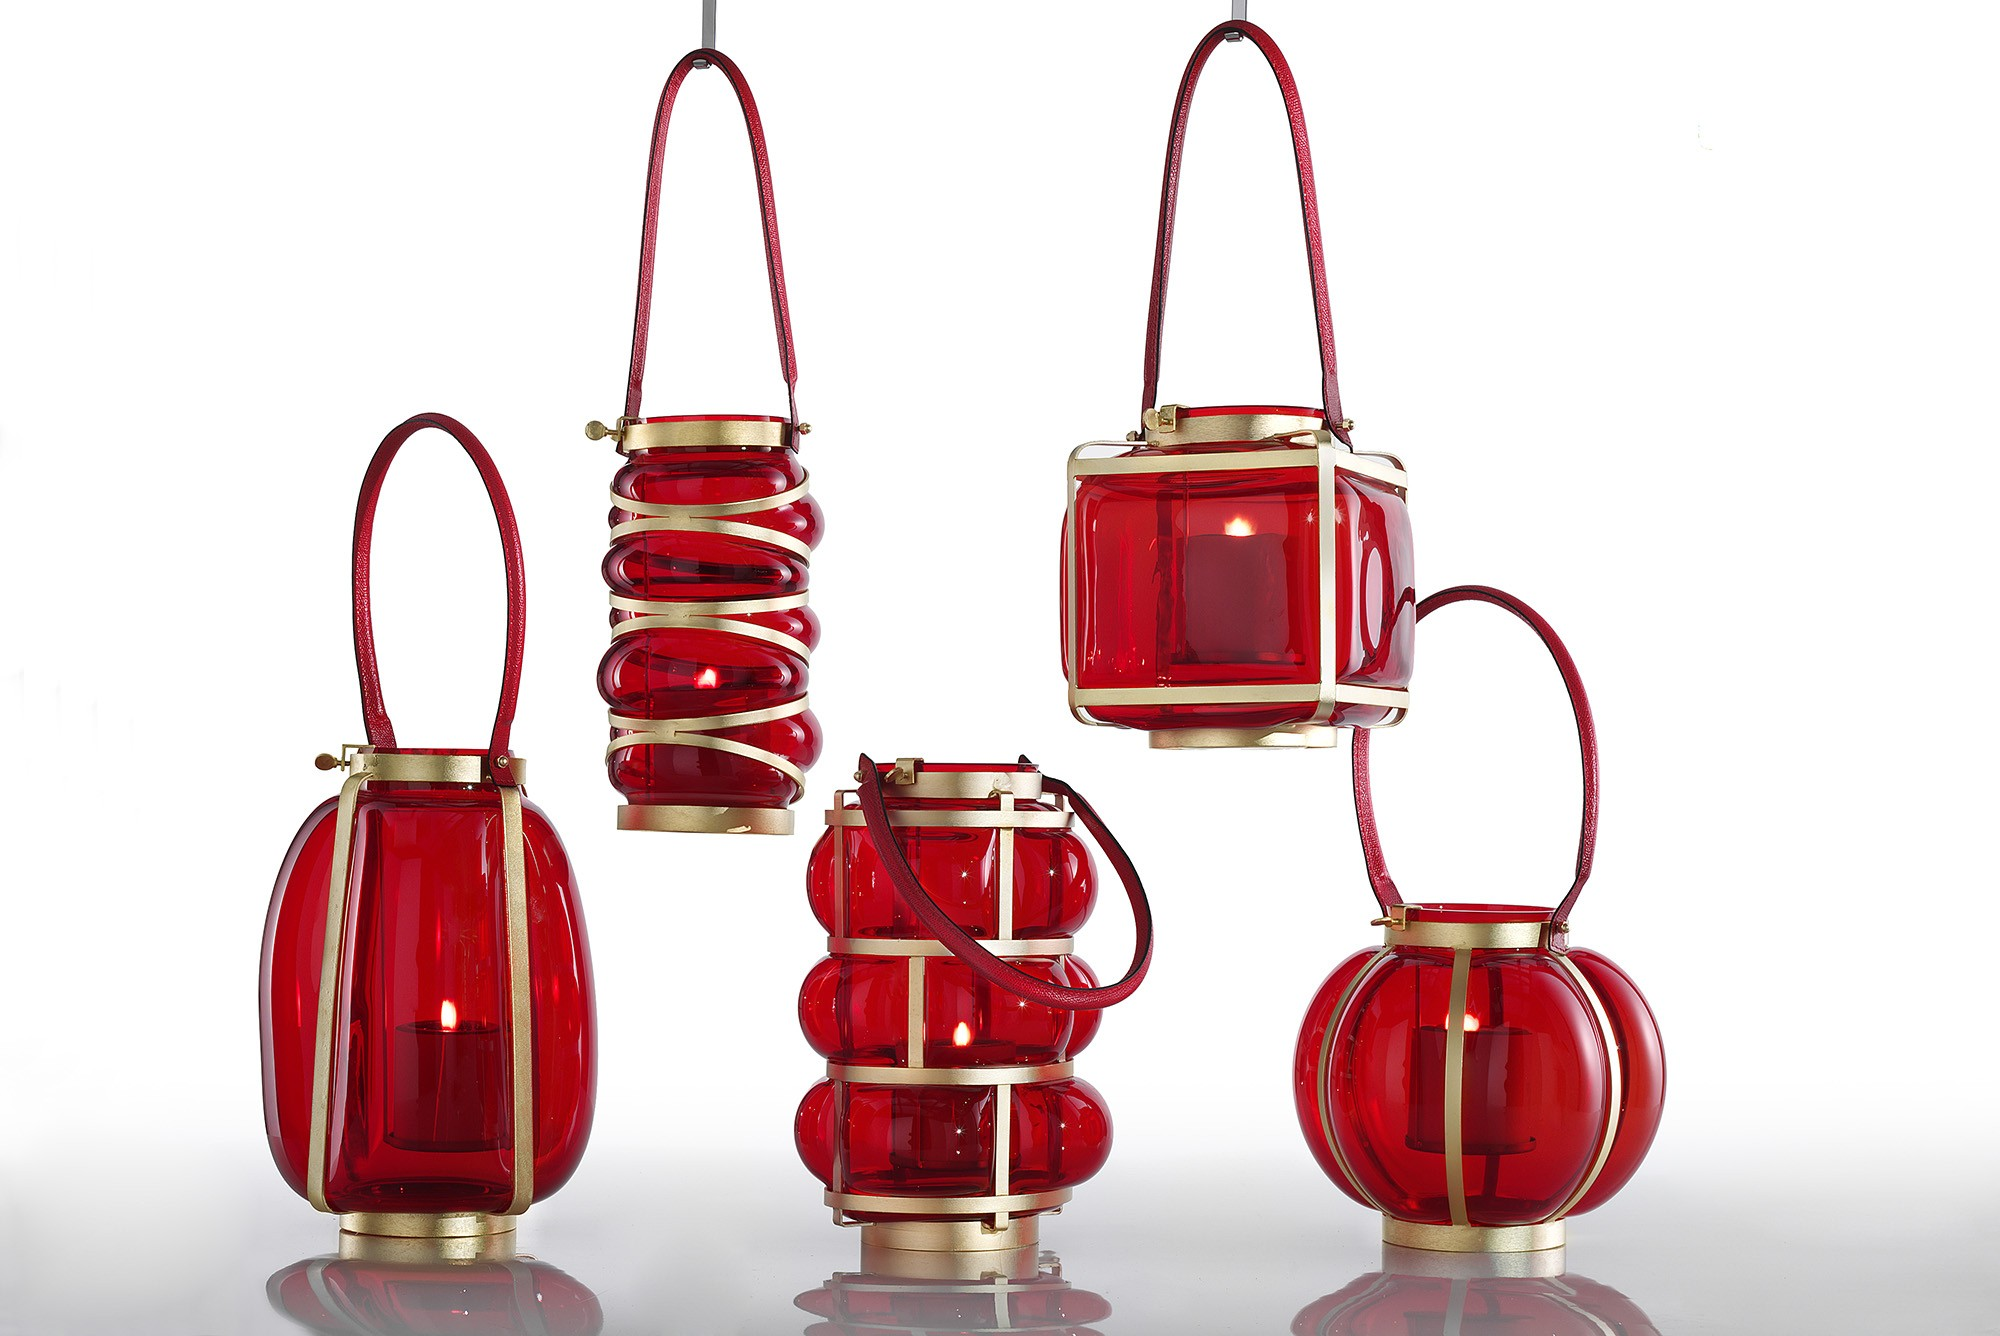 Square red glass and gold lantern, leather handle